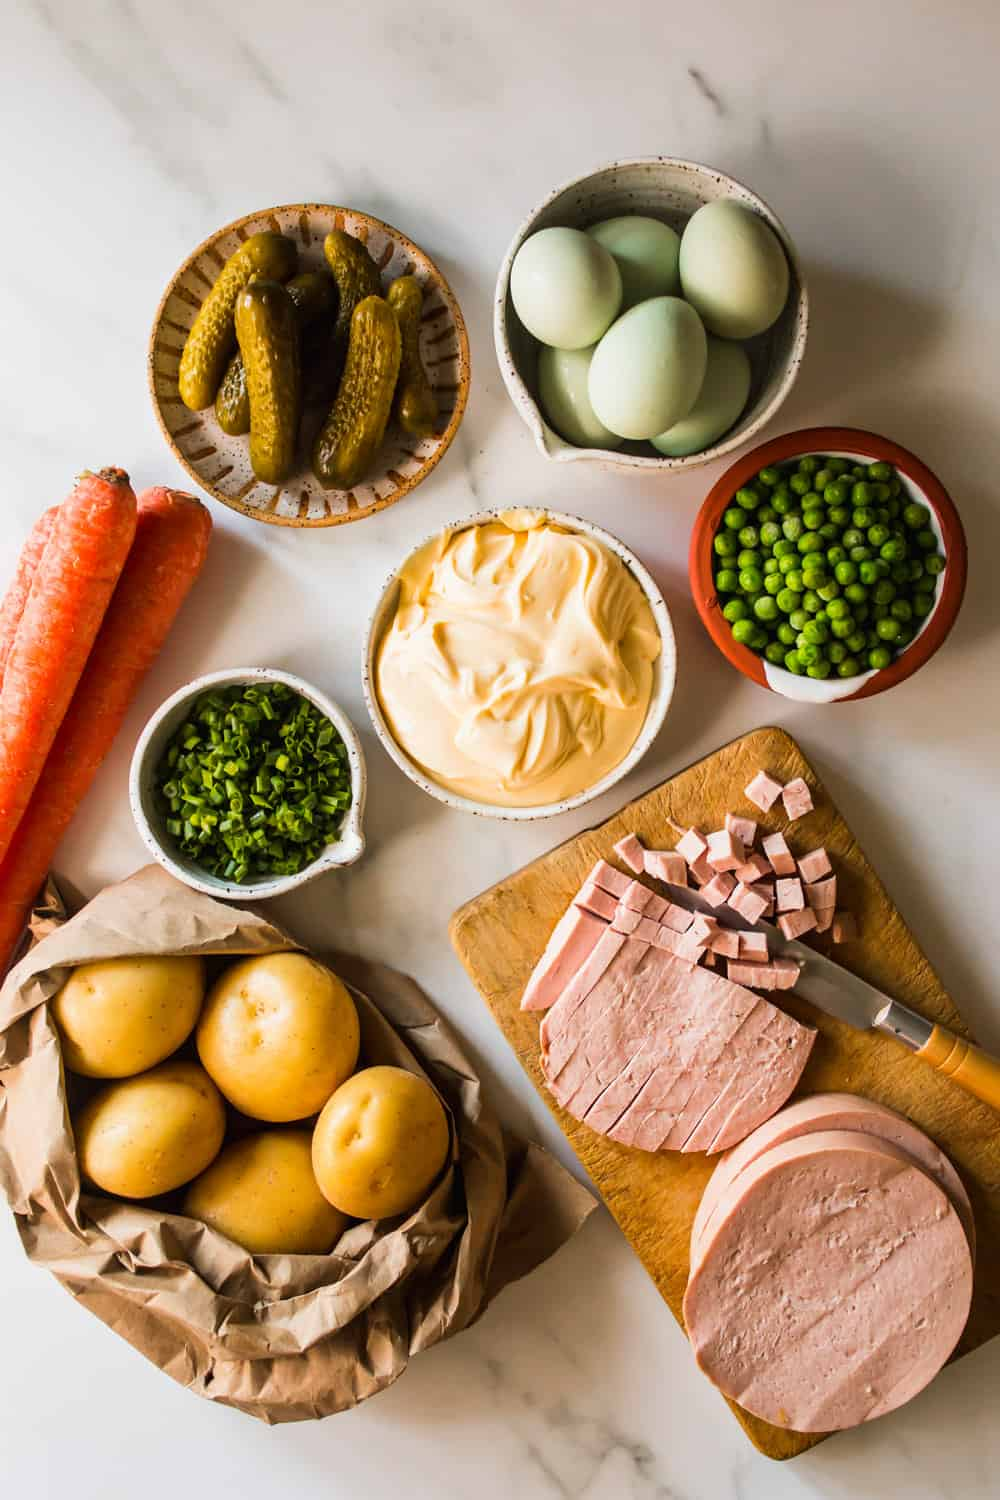 Pickles, eggs, peas, mayo, potatoes, scallions in individual bowls. Slicing ham on a wood cutting board.